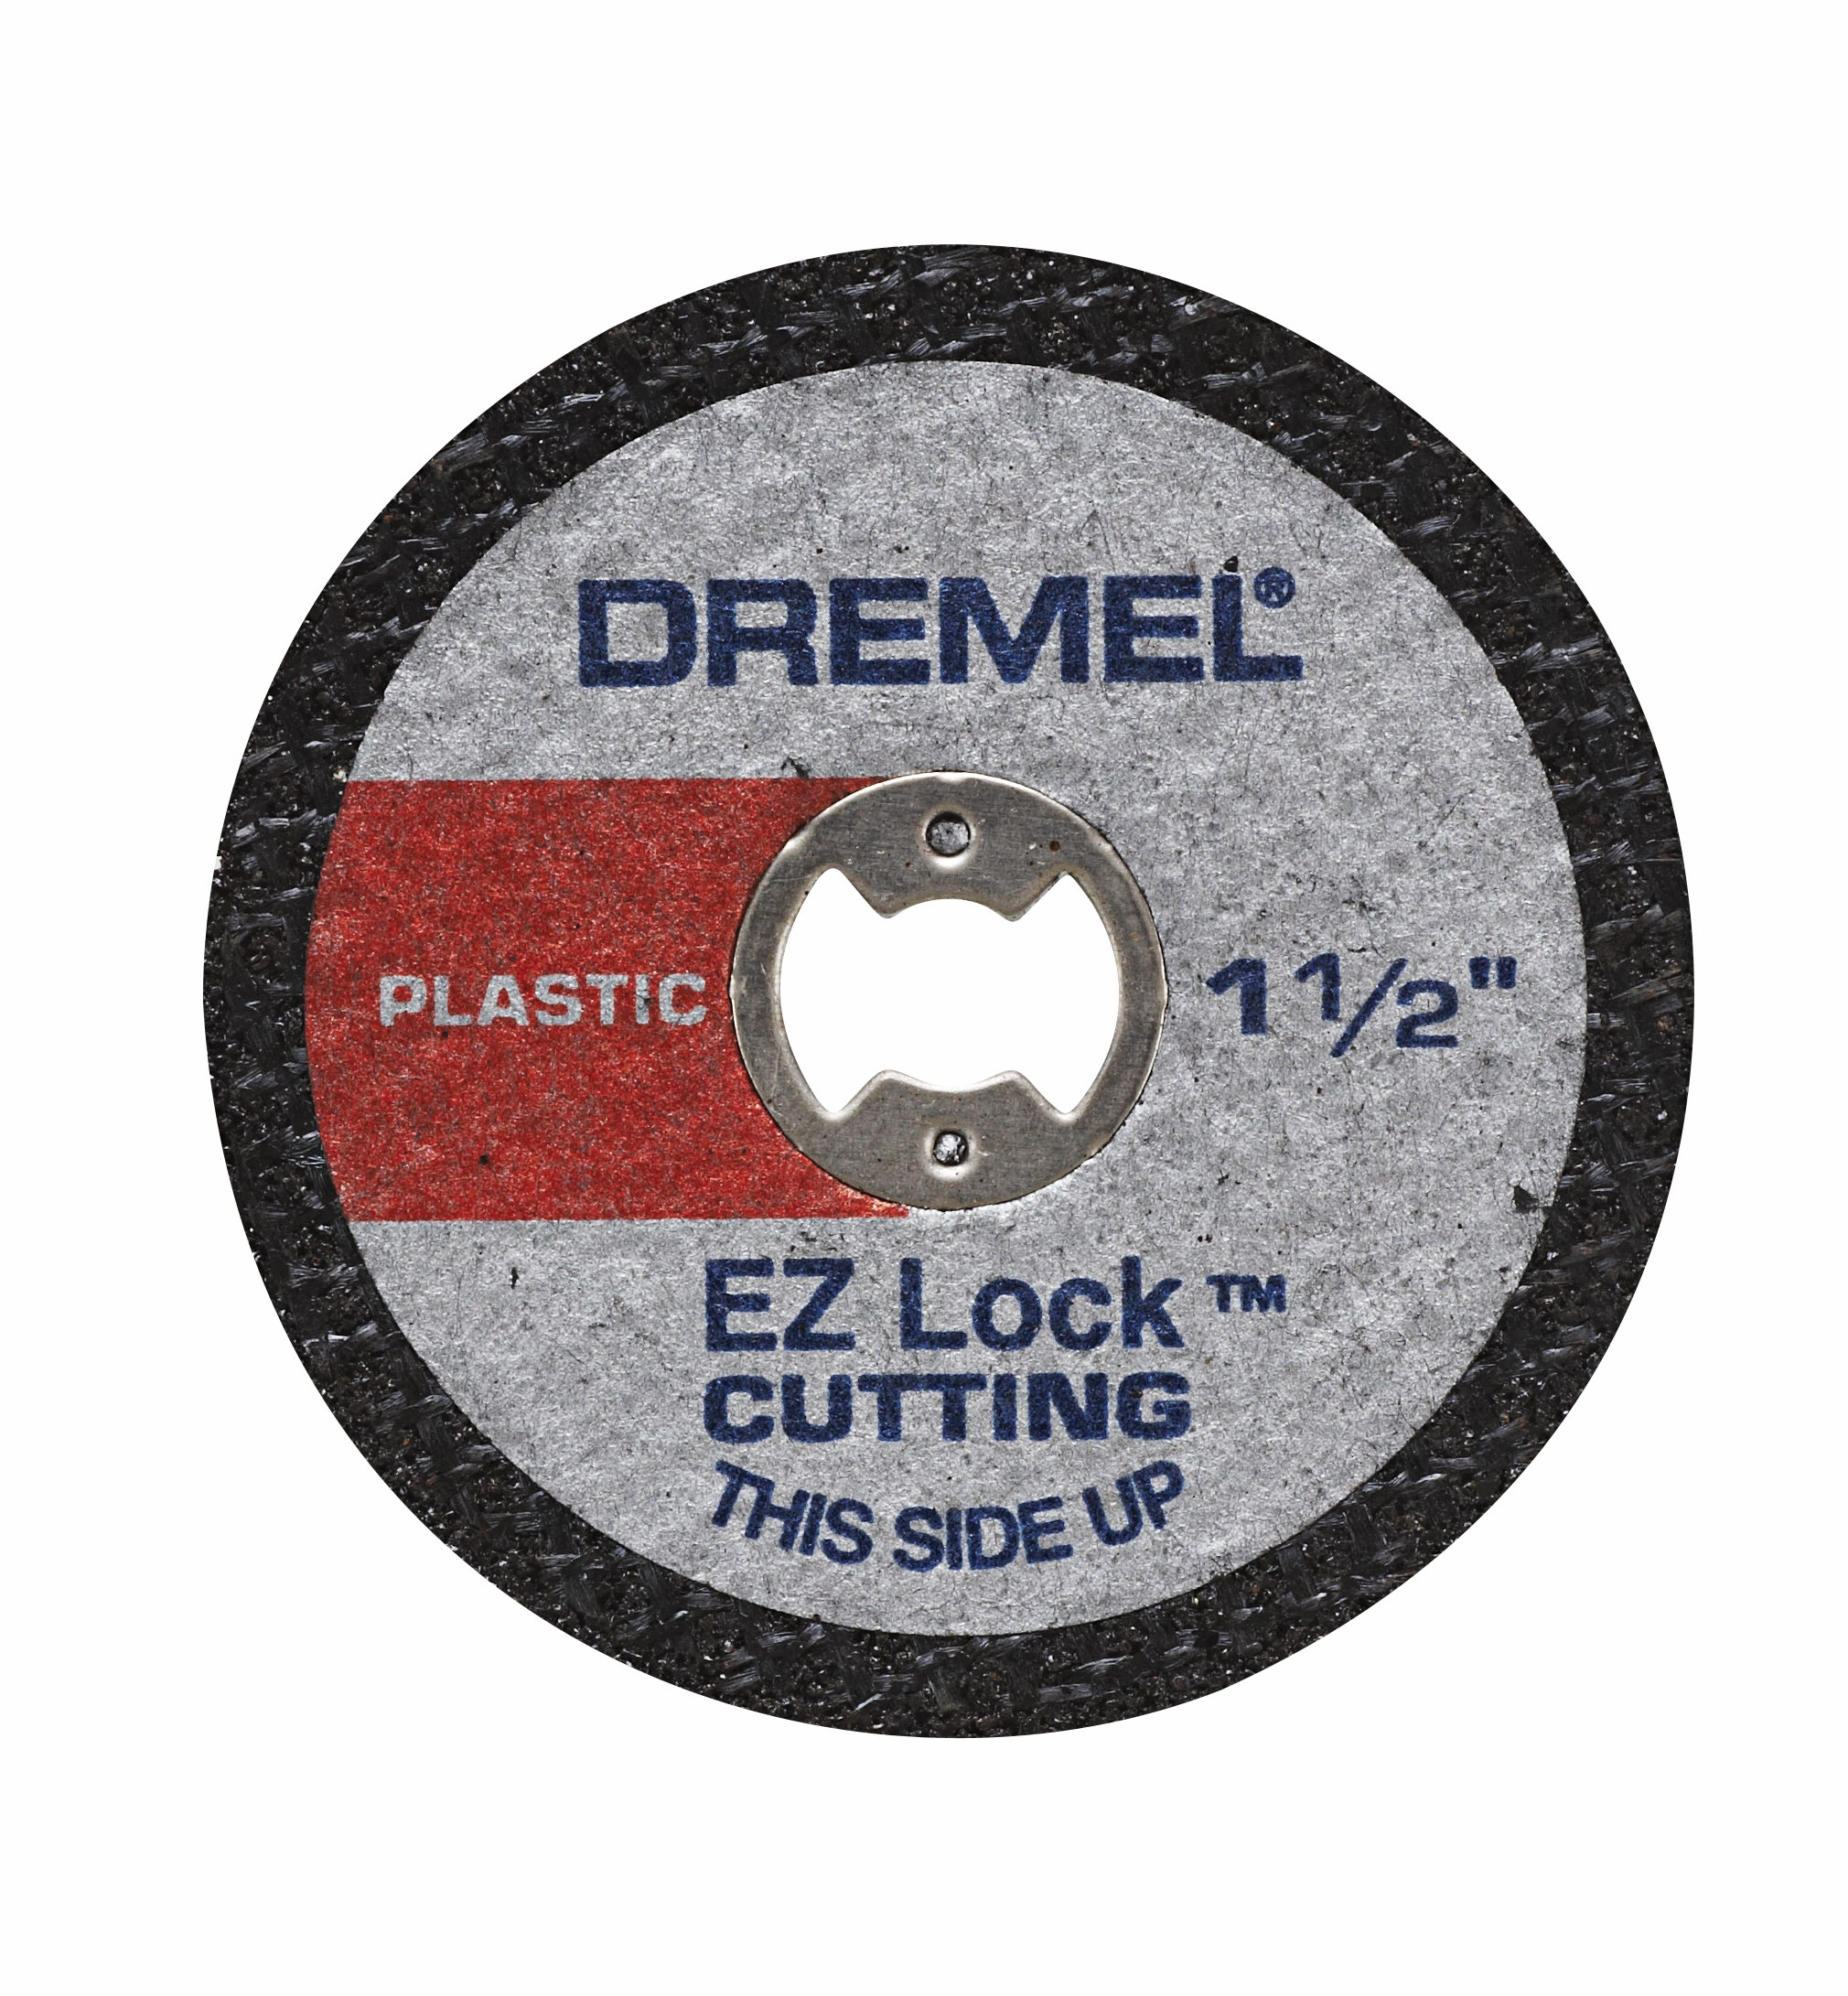 Dremel EZ476 EZ Lock 1-1/2 inch Cut-Off Wheels for Plastic, 5-Pack